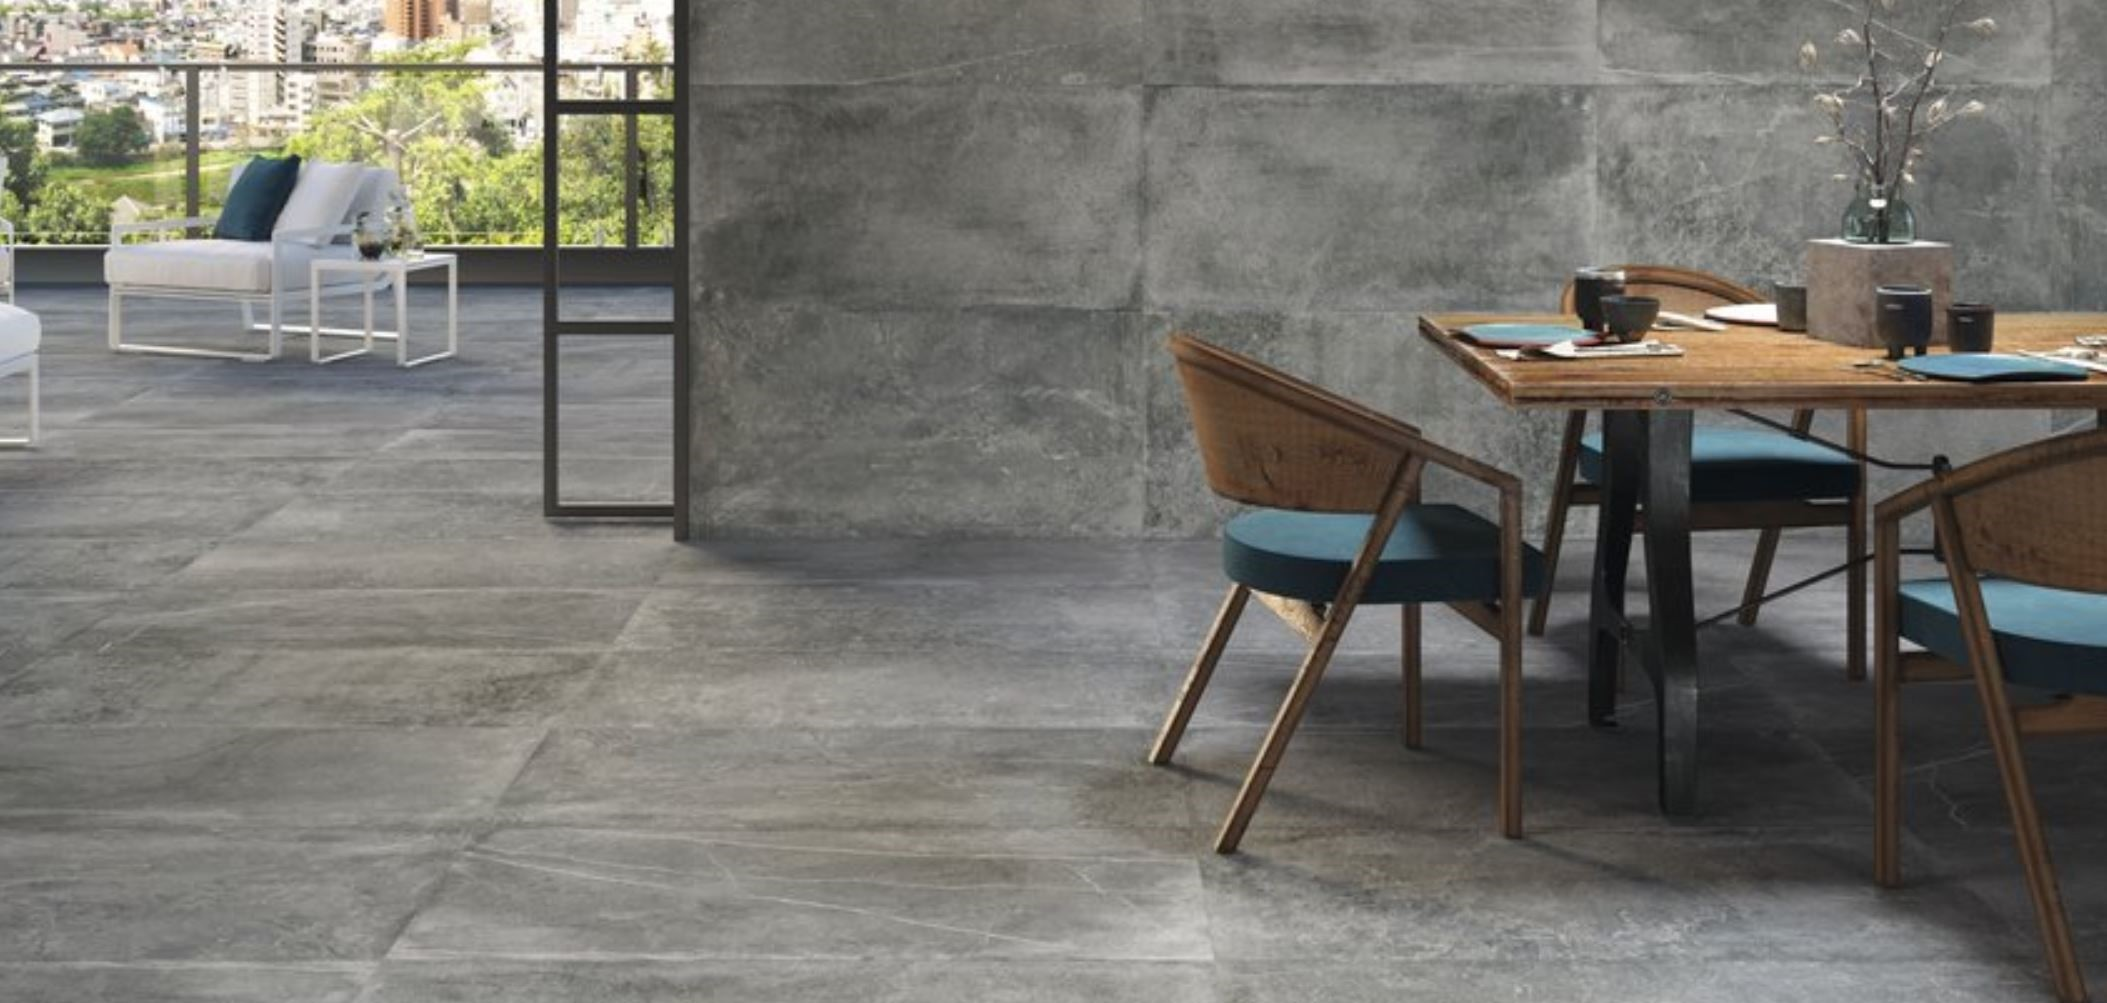 Best Types of Commercial Tiles In Australia To Choose From